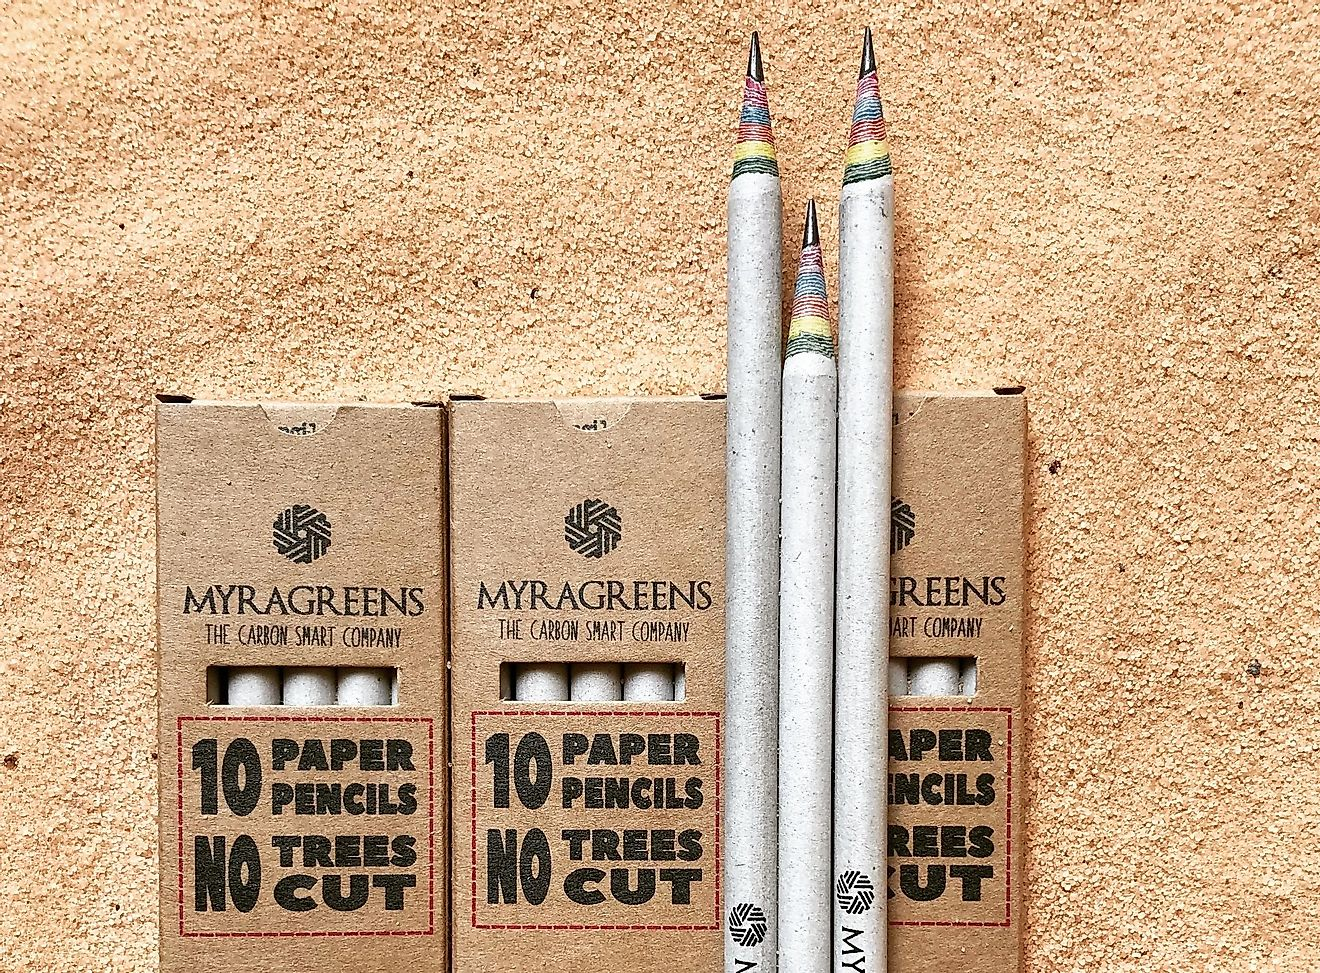 Recycled pencils made by MyraGreens. Photo credit: MyraGreens.